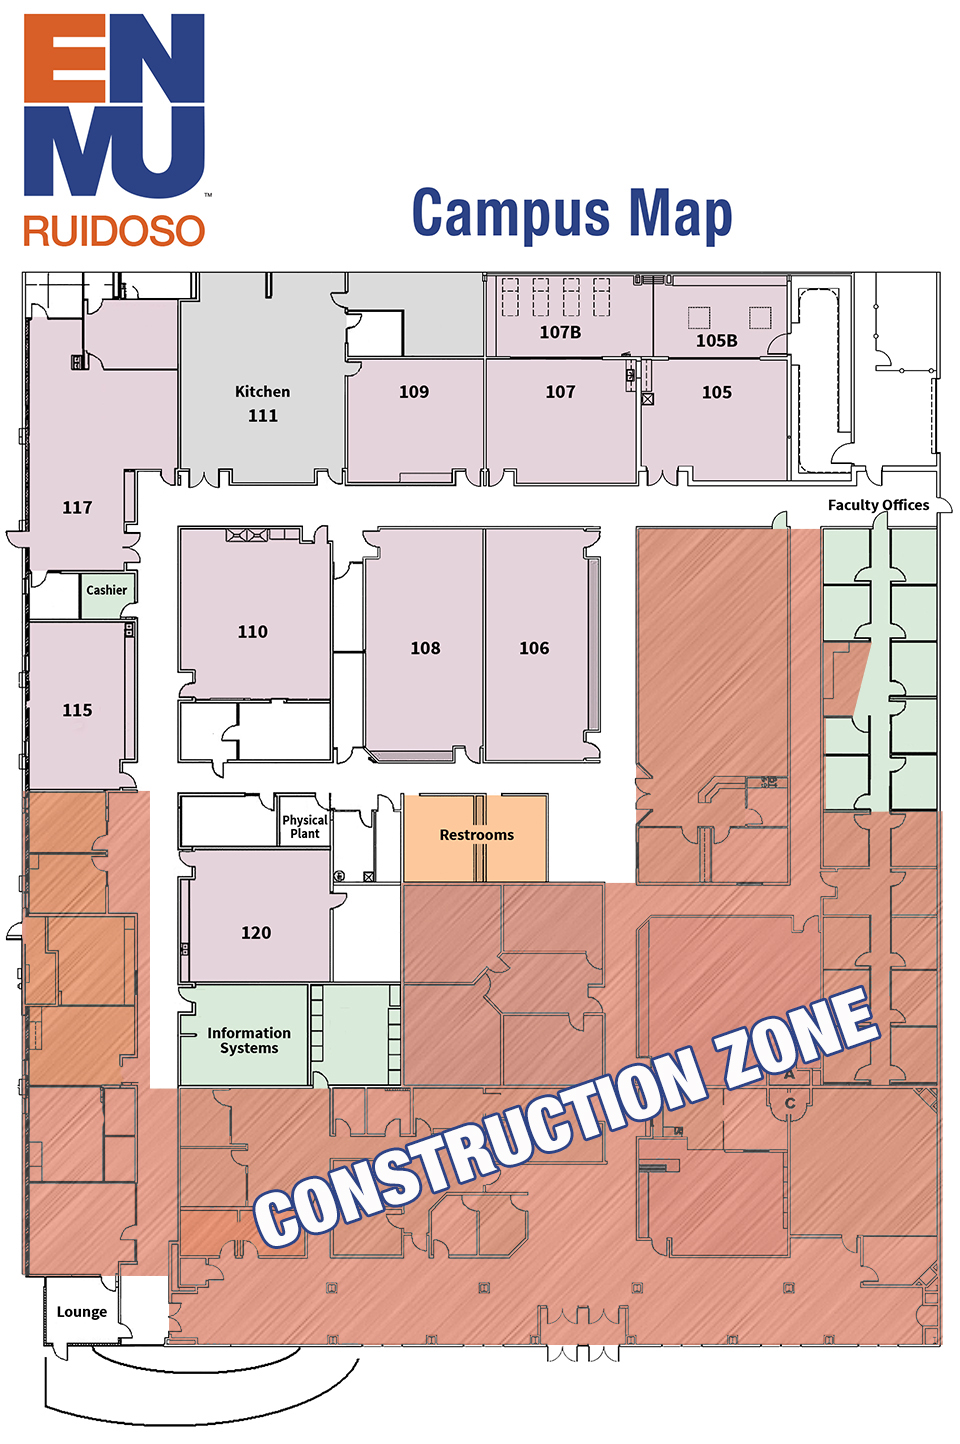 Main Campus Map showing construction zone